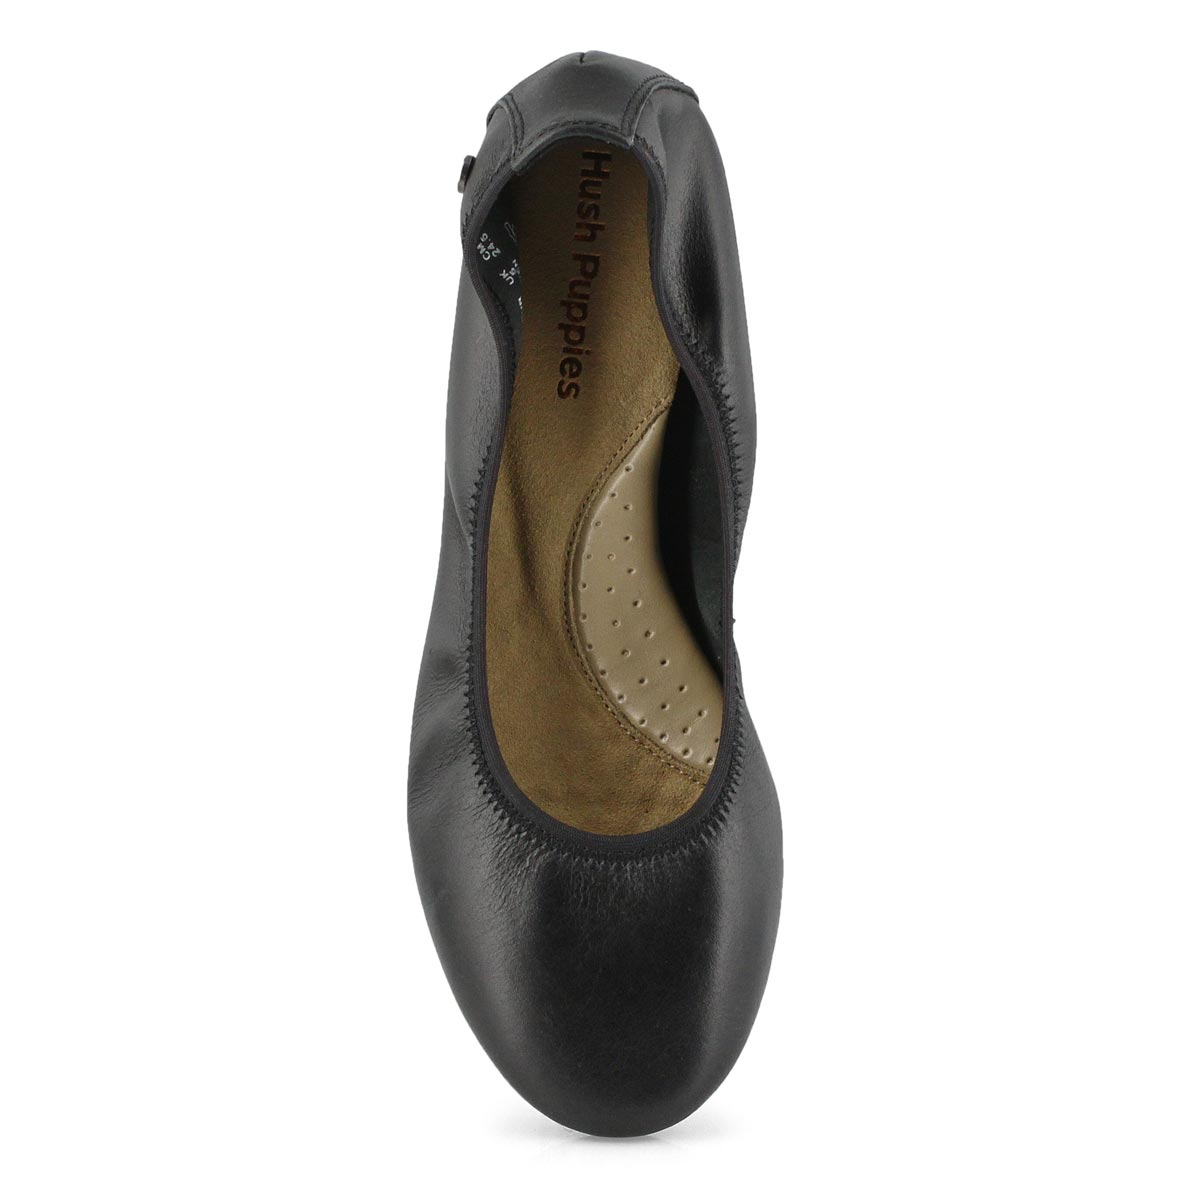 Lds Chaste Ballet black leather flat